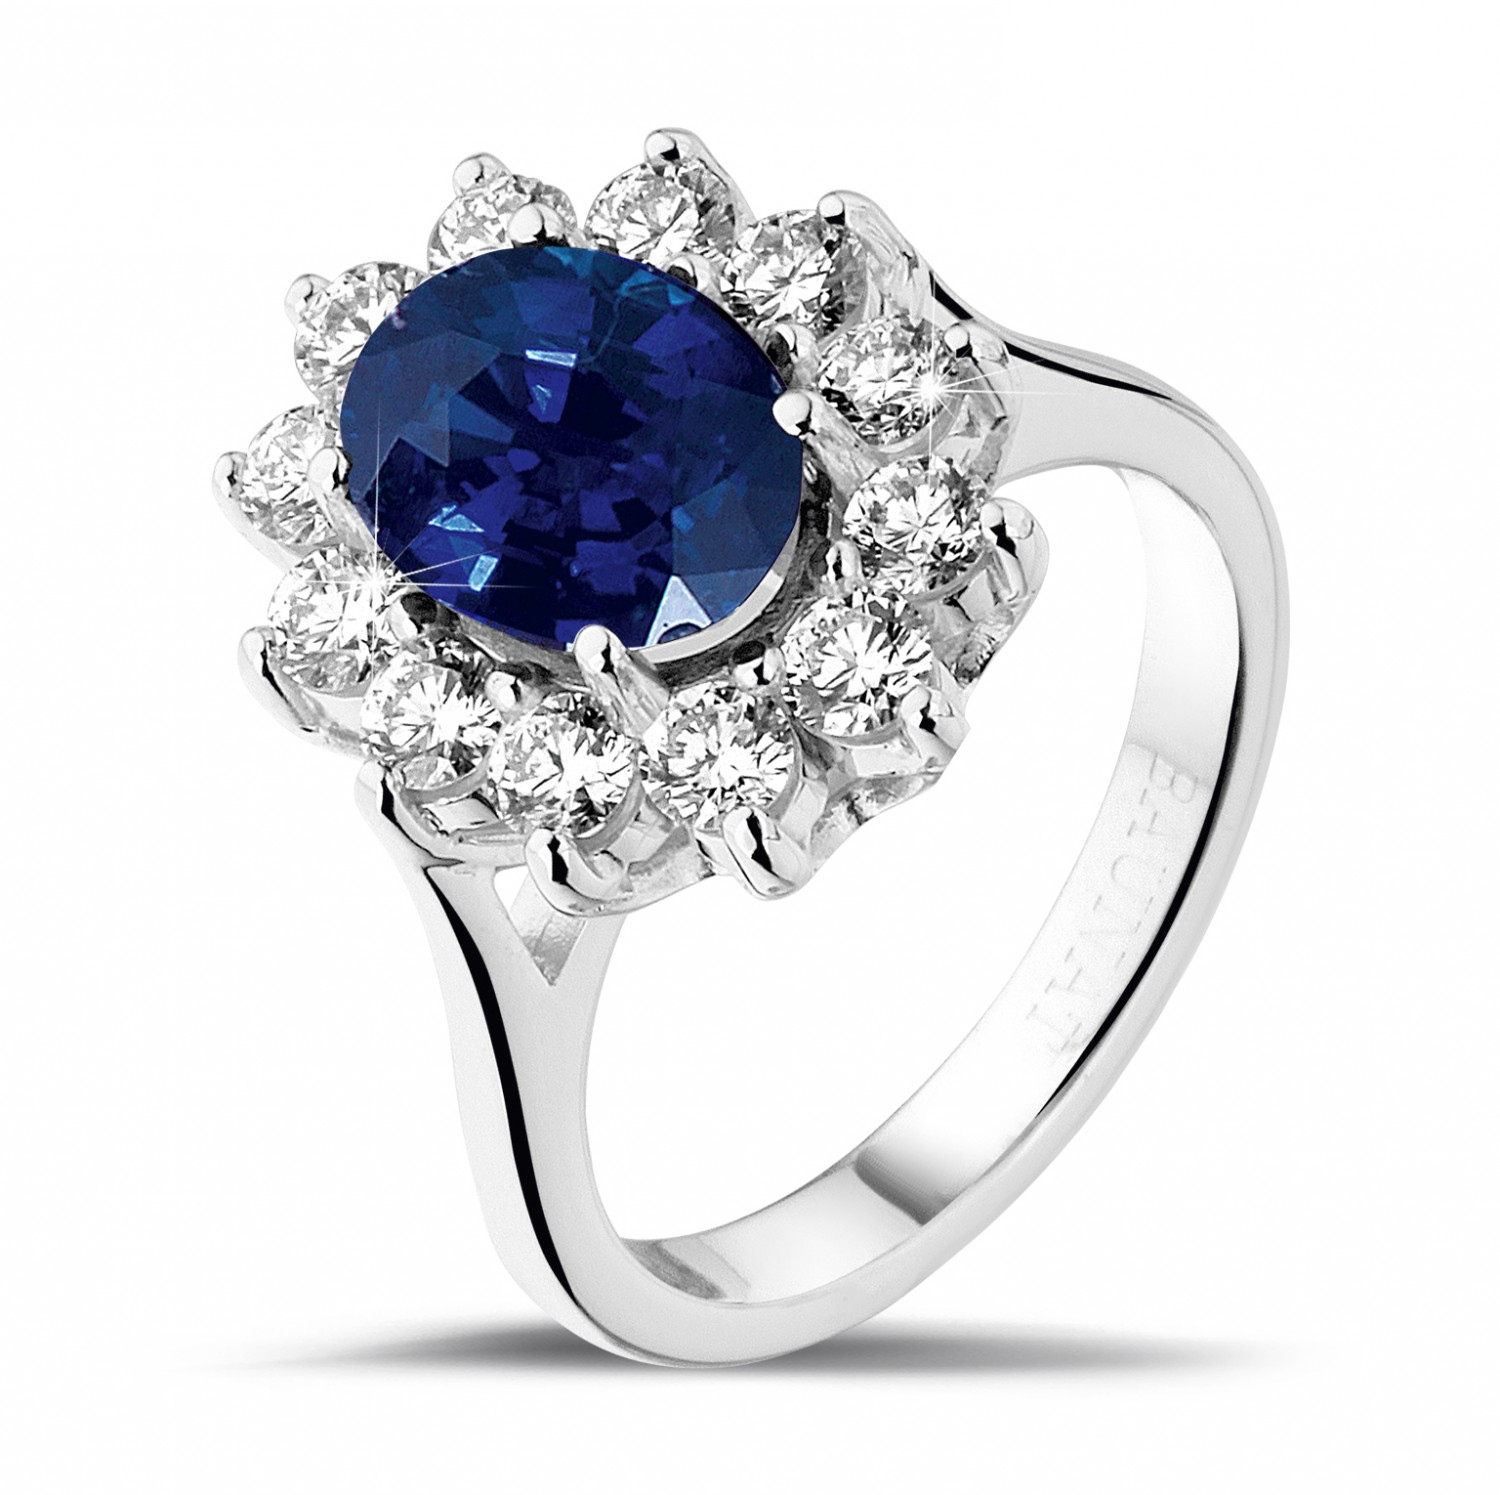 Entourage Ring In Platinum With An Oval Sapphire And Round